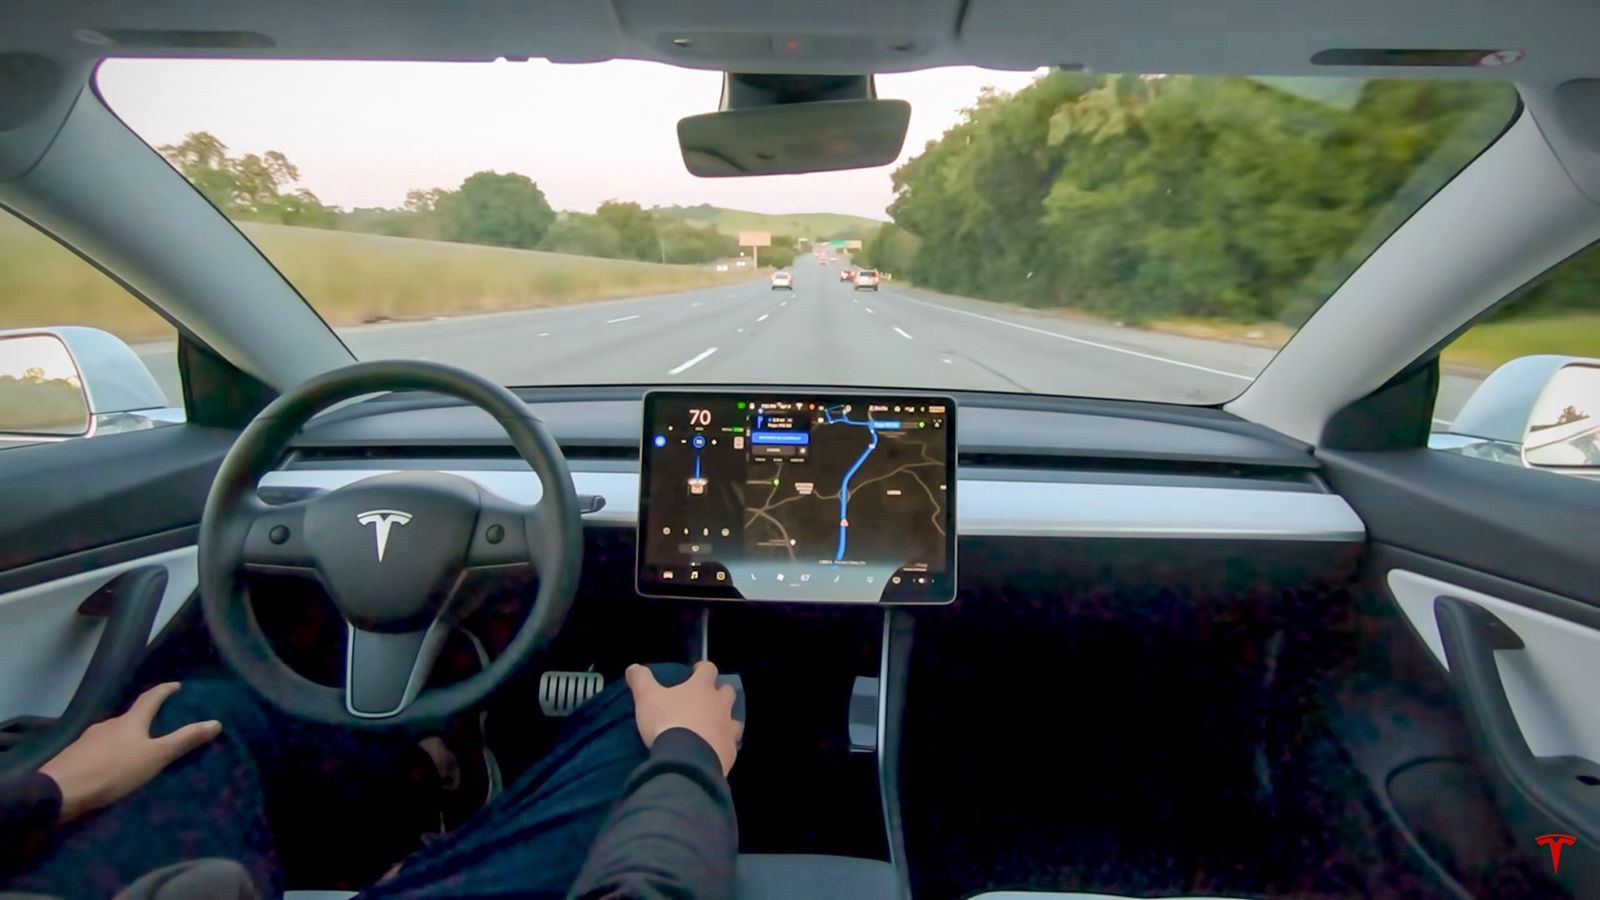 Elon Musk tweeted that Tesla will expand its FSD beta